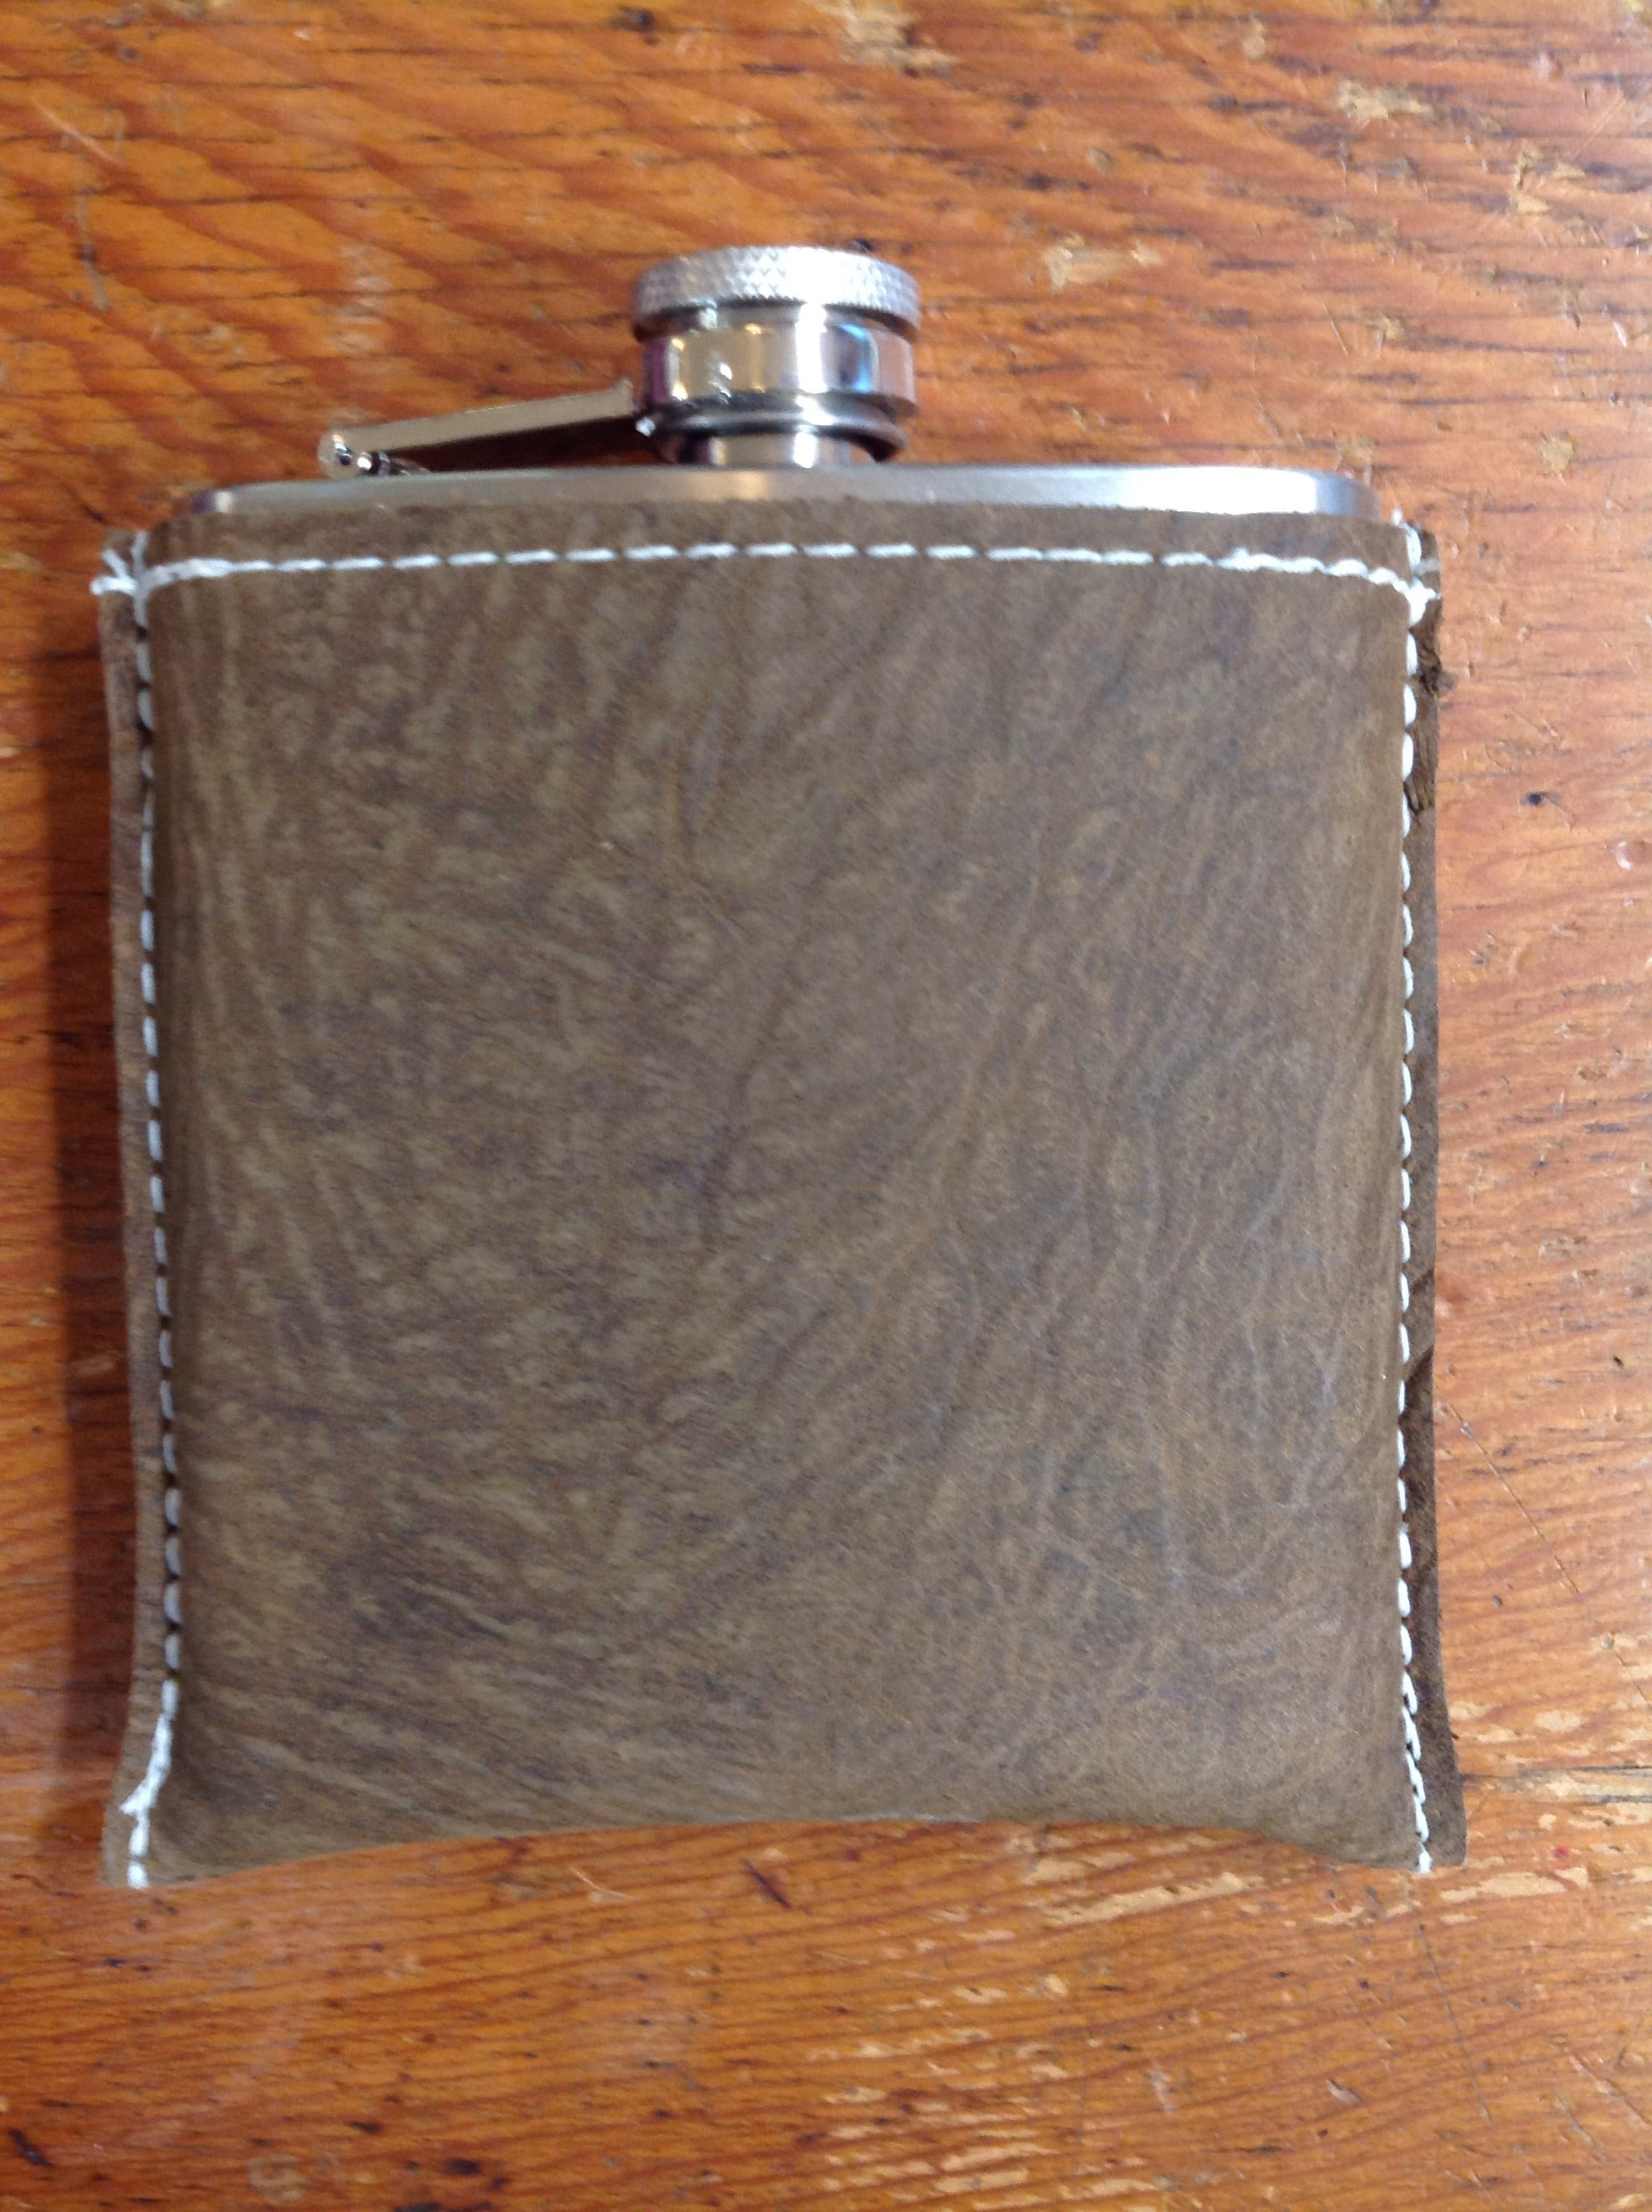 Spears Leather - Flask - bison leather cover over stainless steel